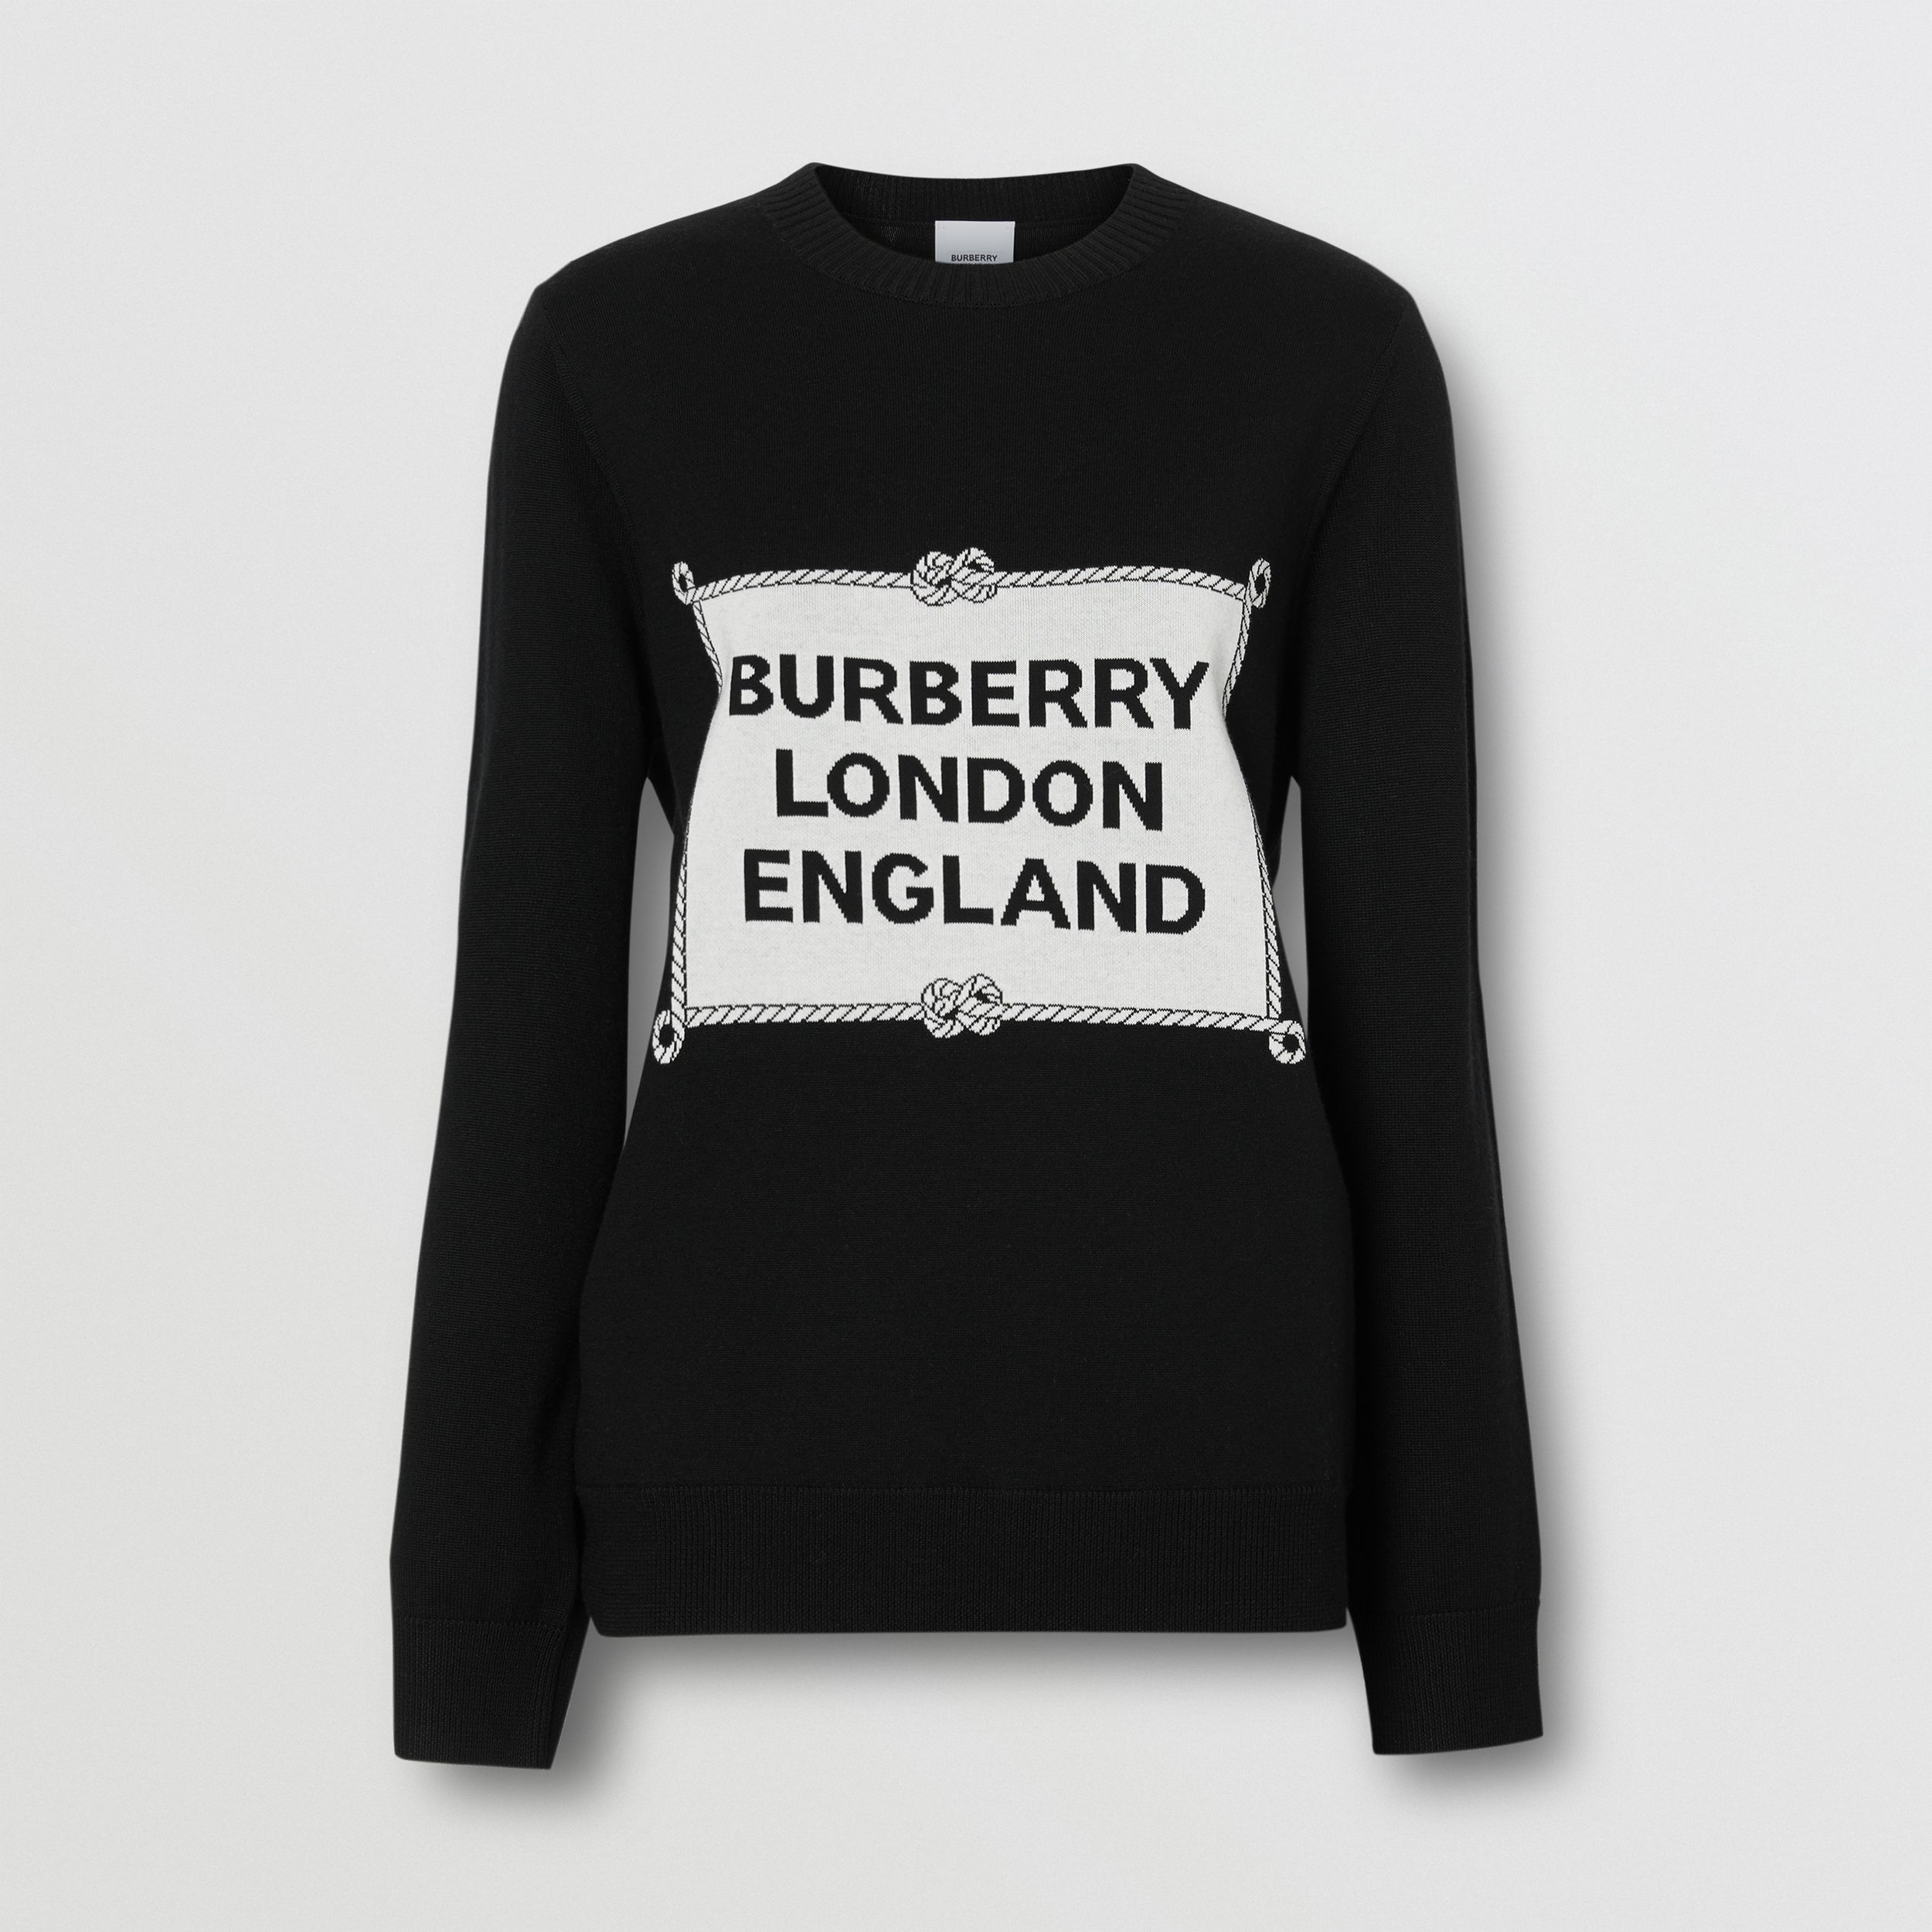 Rigging Intarsia Merino Wool Sweater in Black - Women | Burberry - 4